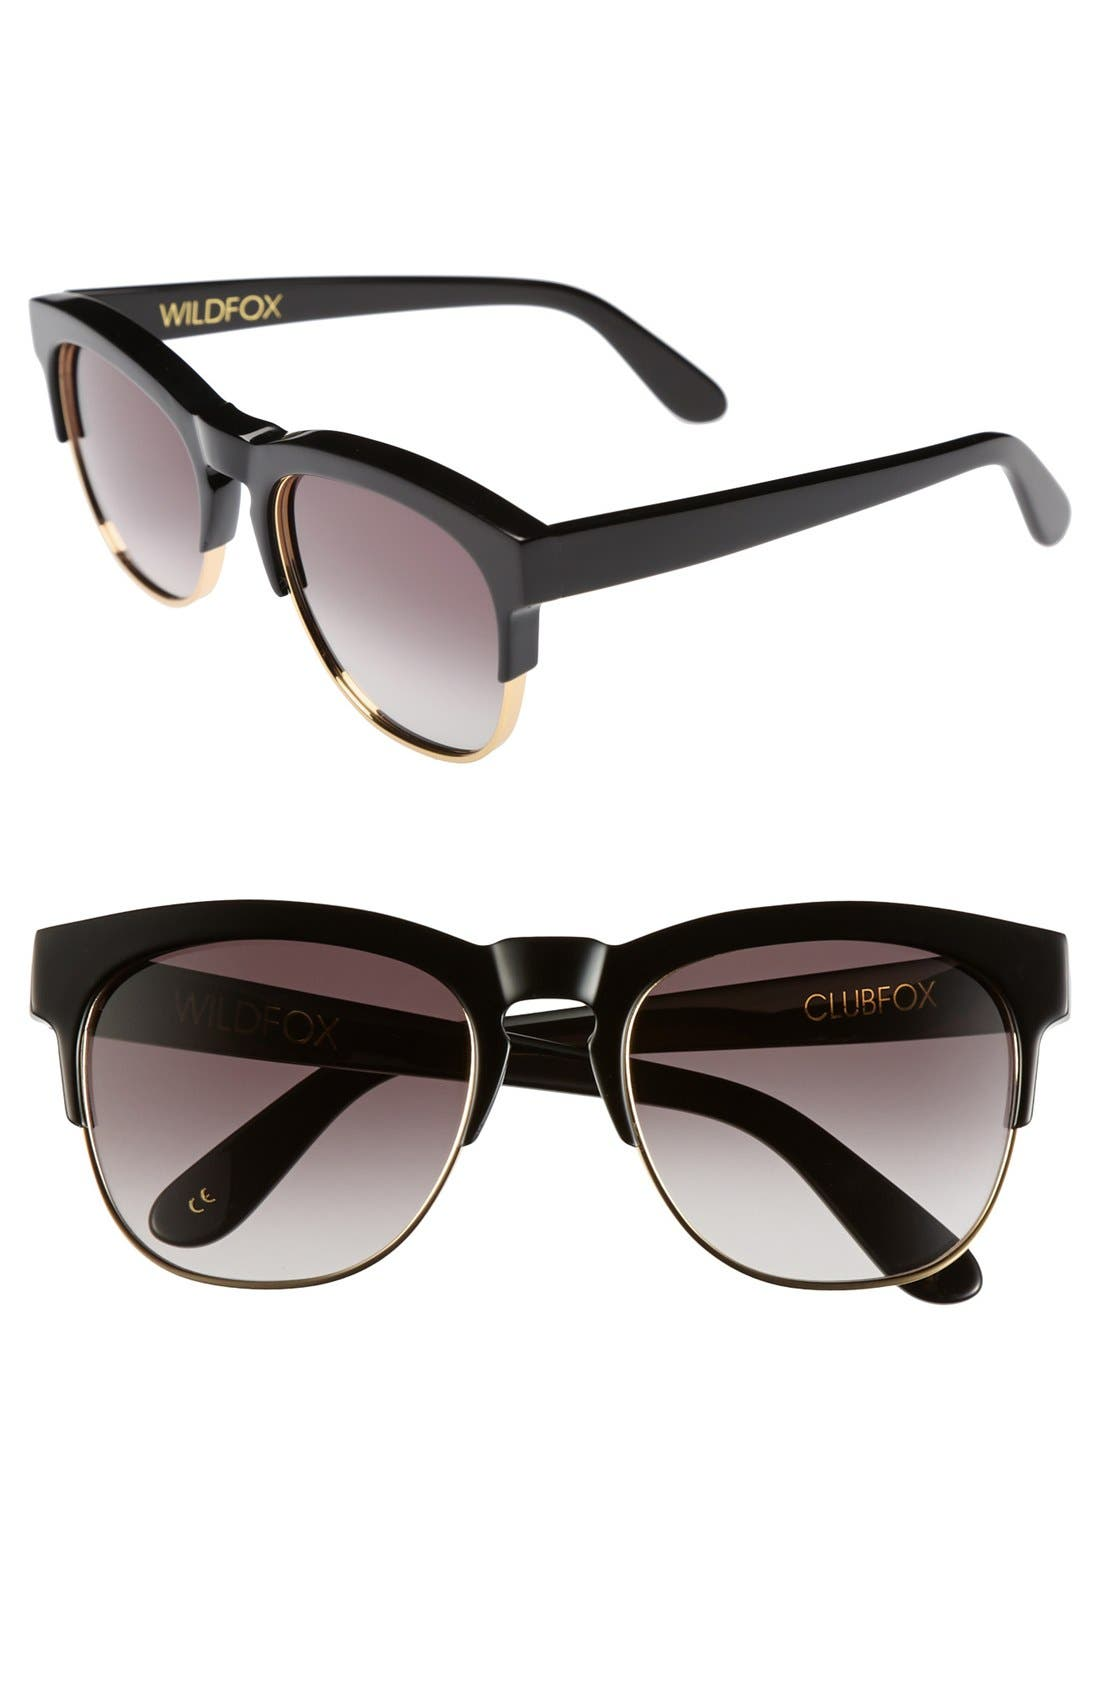 Main Image - Wildfox 'Club Fox' 52mm Sunglasses